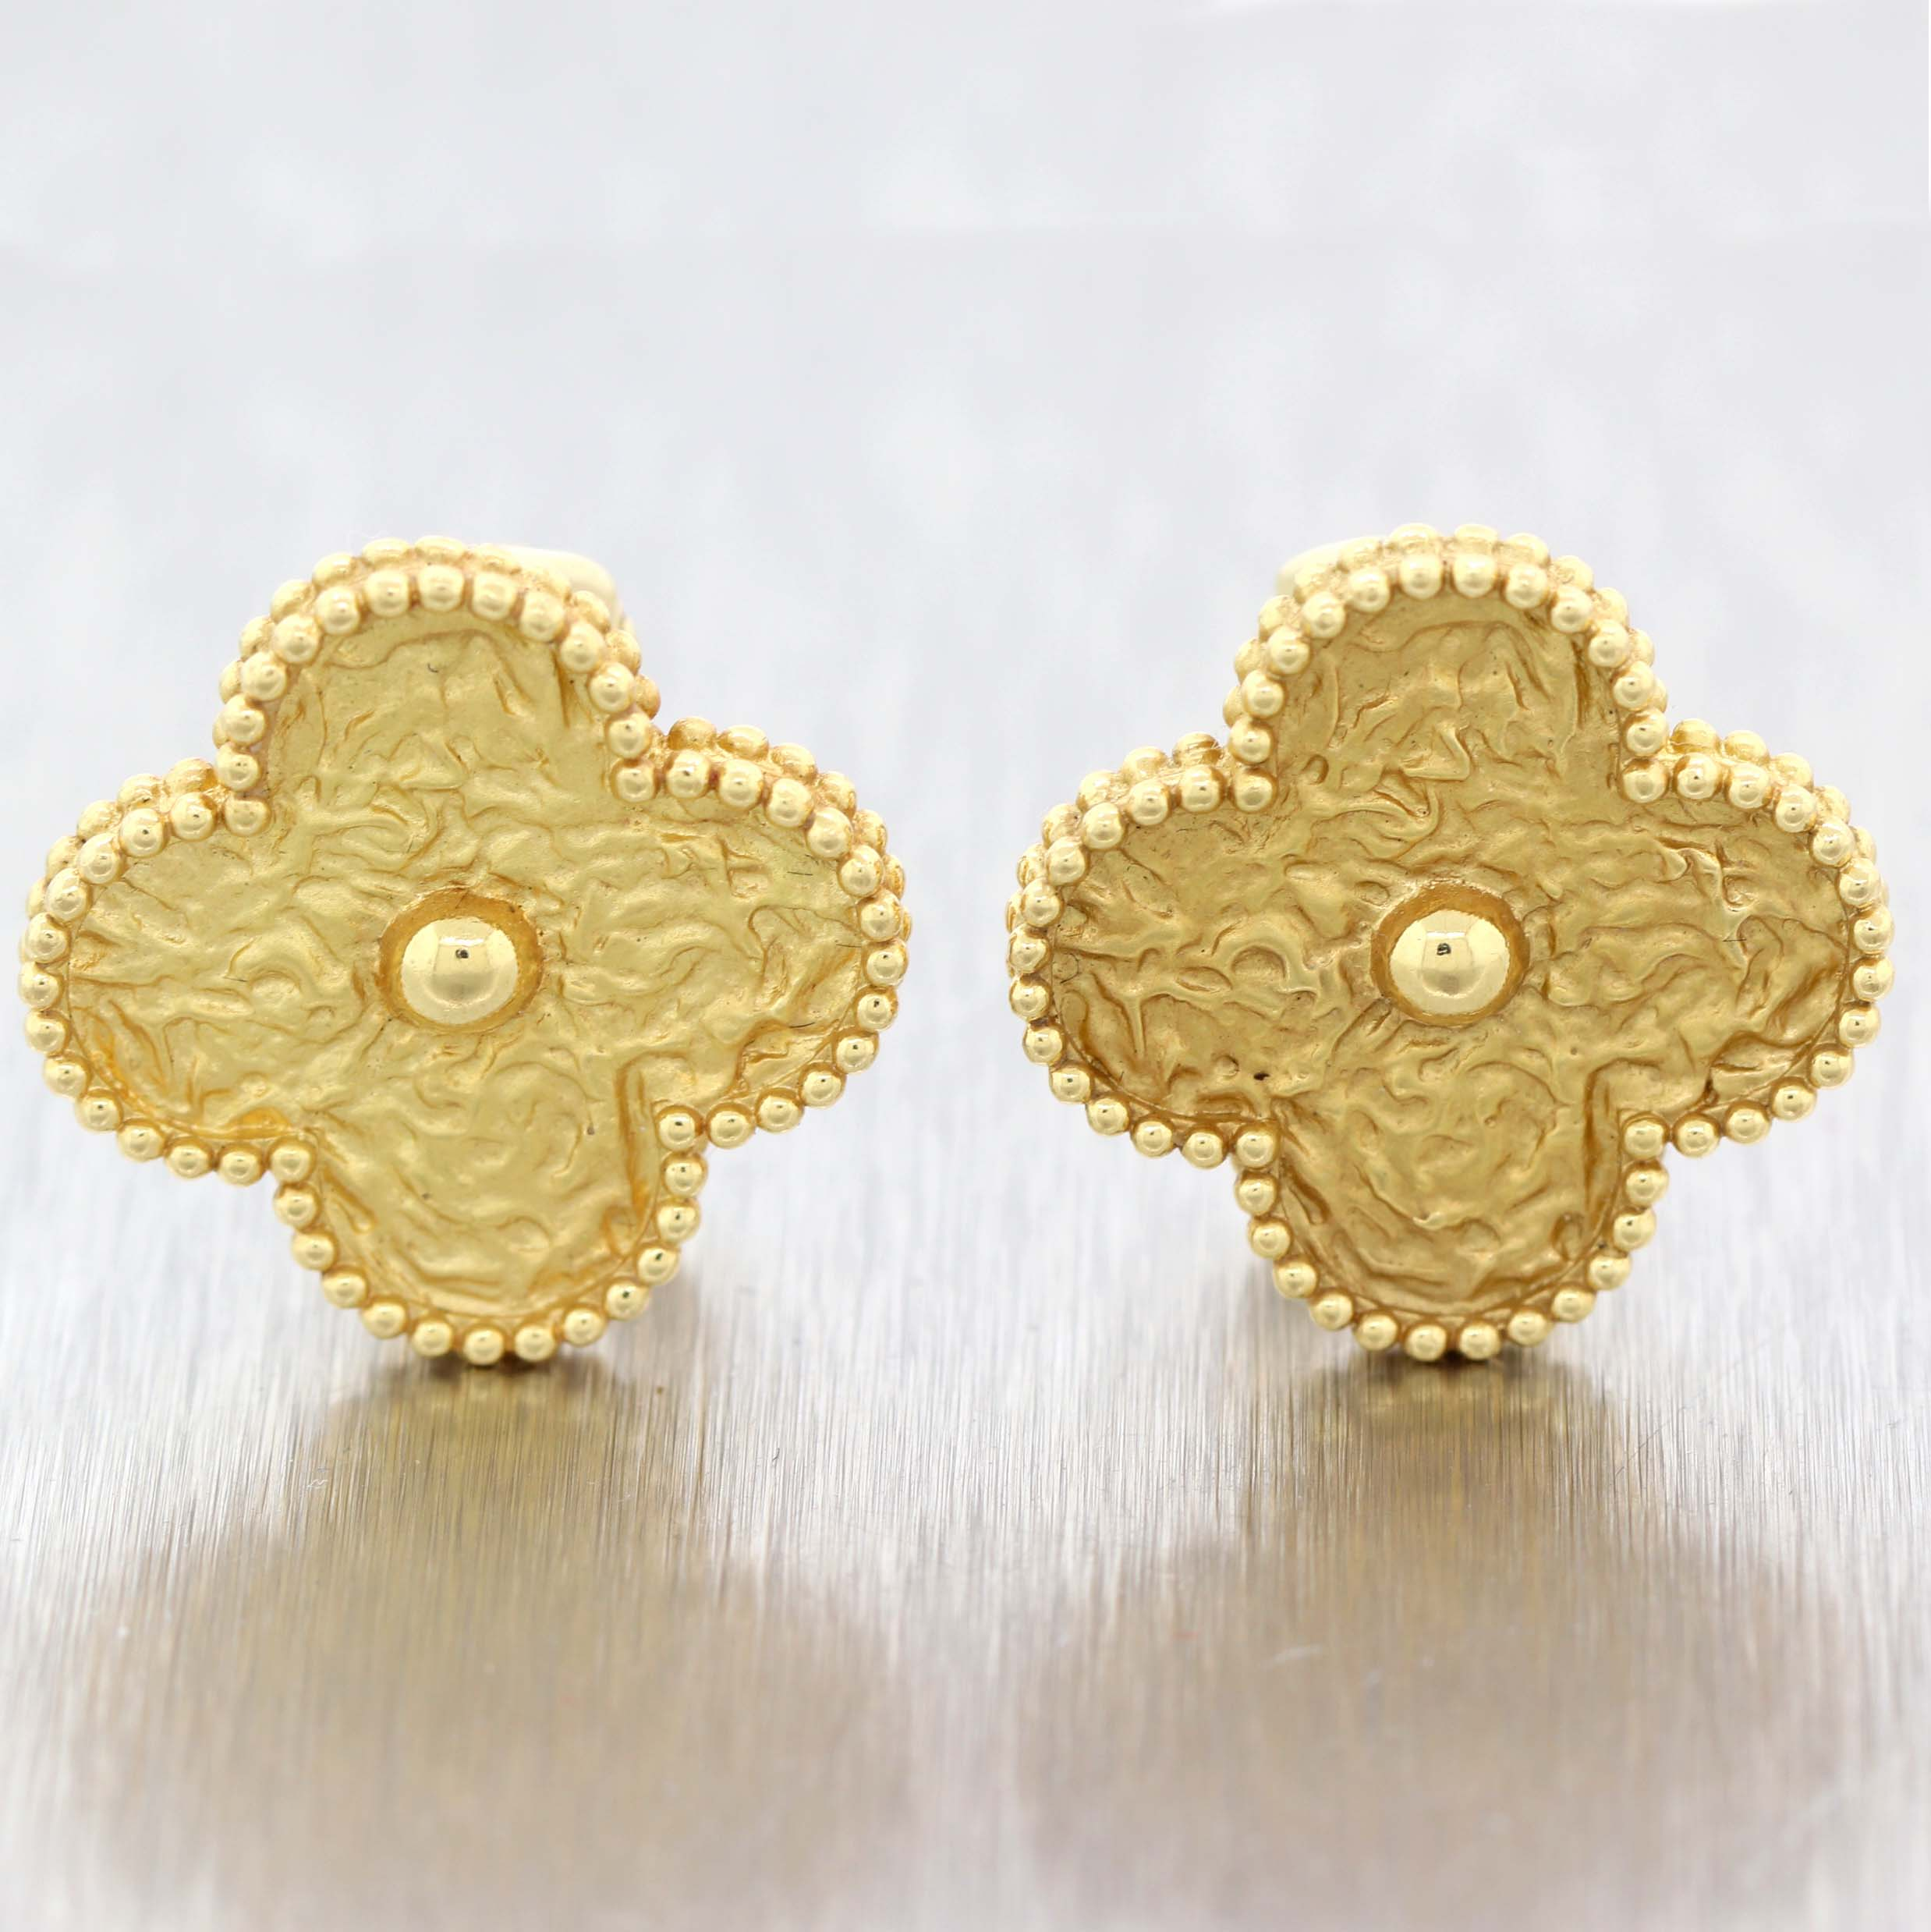 Van Cleef & Arpels 18k Yellow Gold Magic Alhambra Rare Jumbo Motif Earrings D8